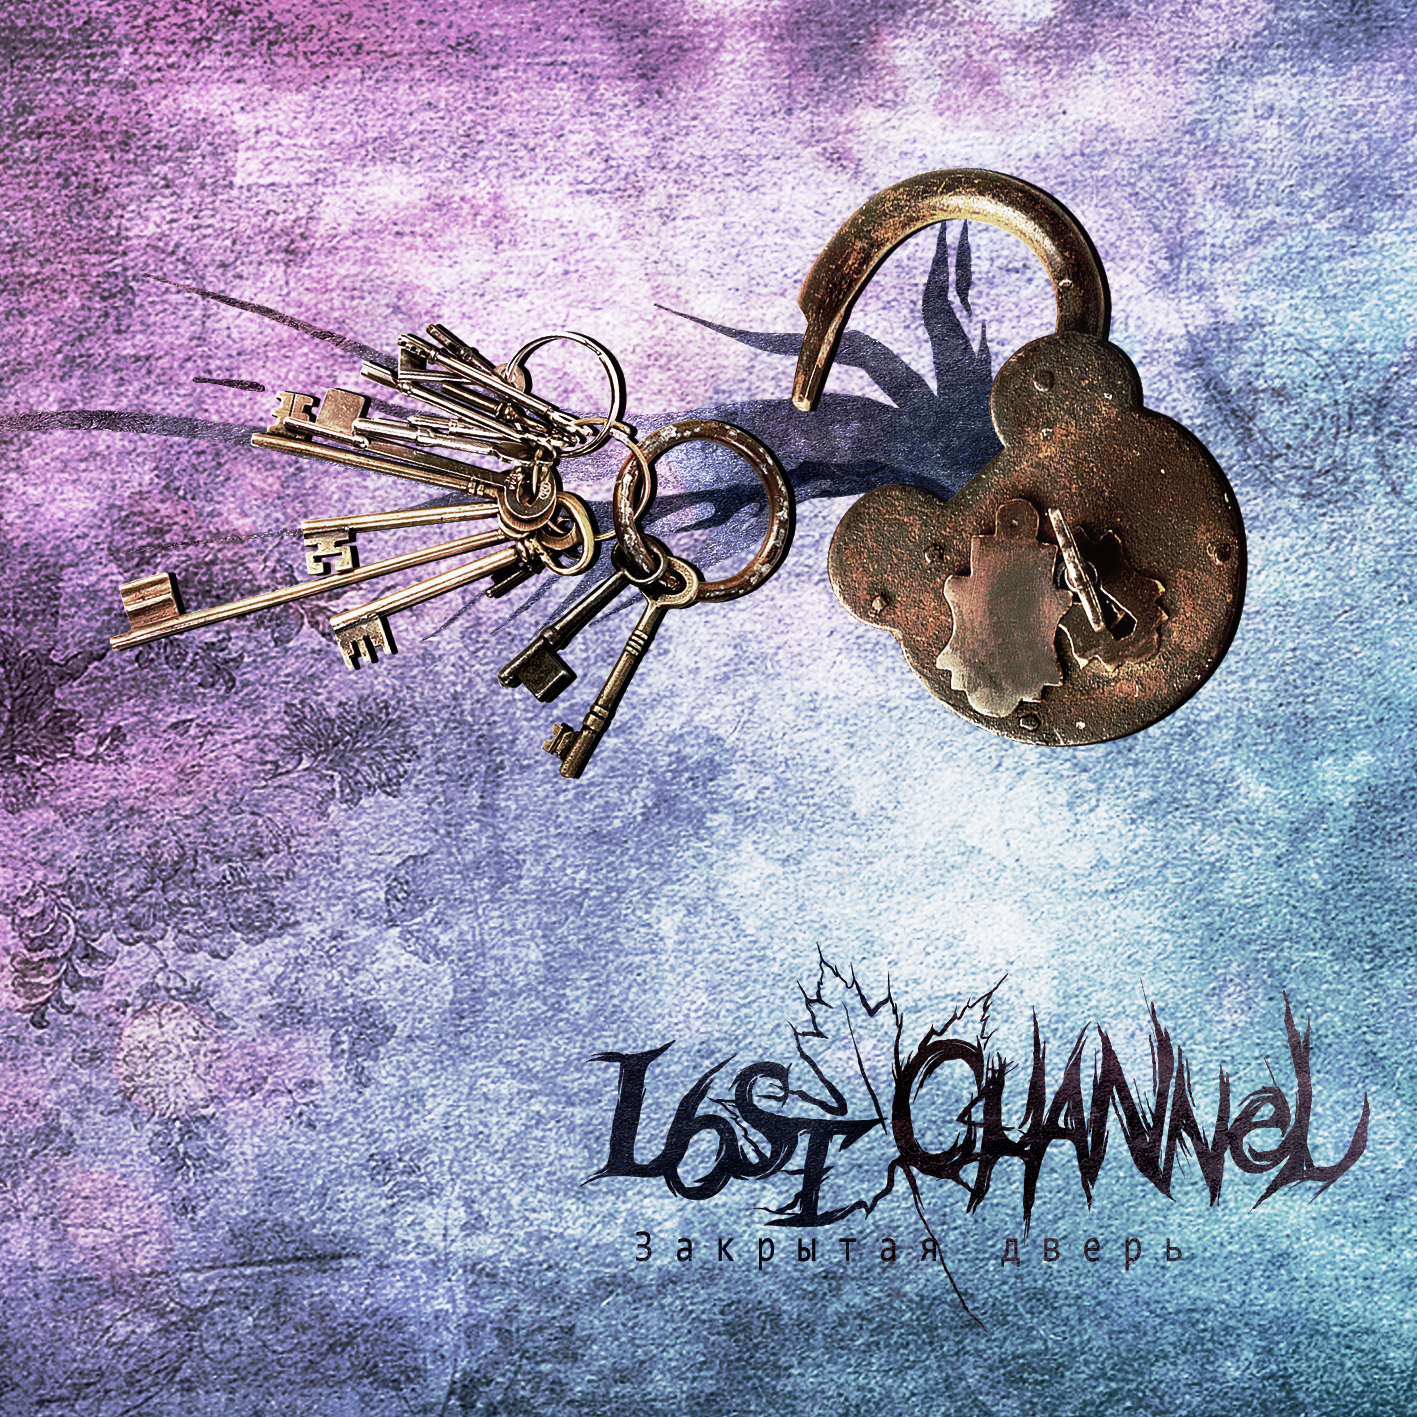 Lost Channel - �������� ����� (2011)